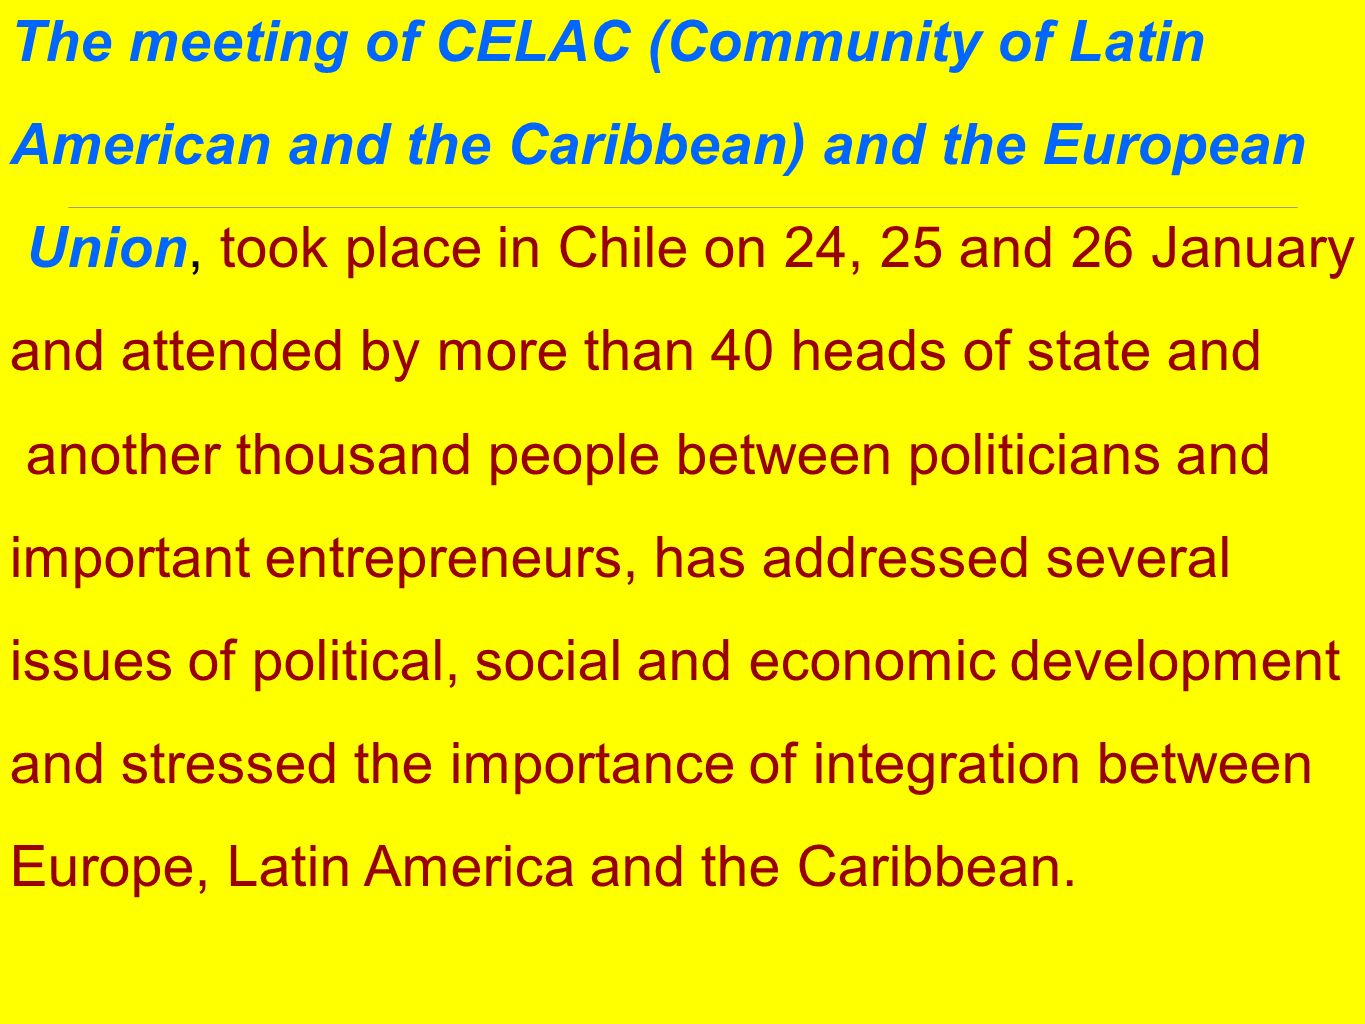 The meeting of CELAC (Community of Latin